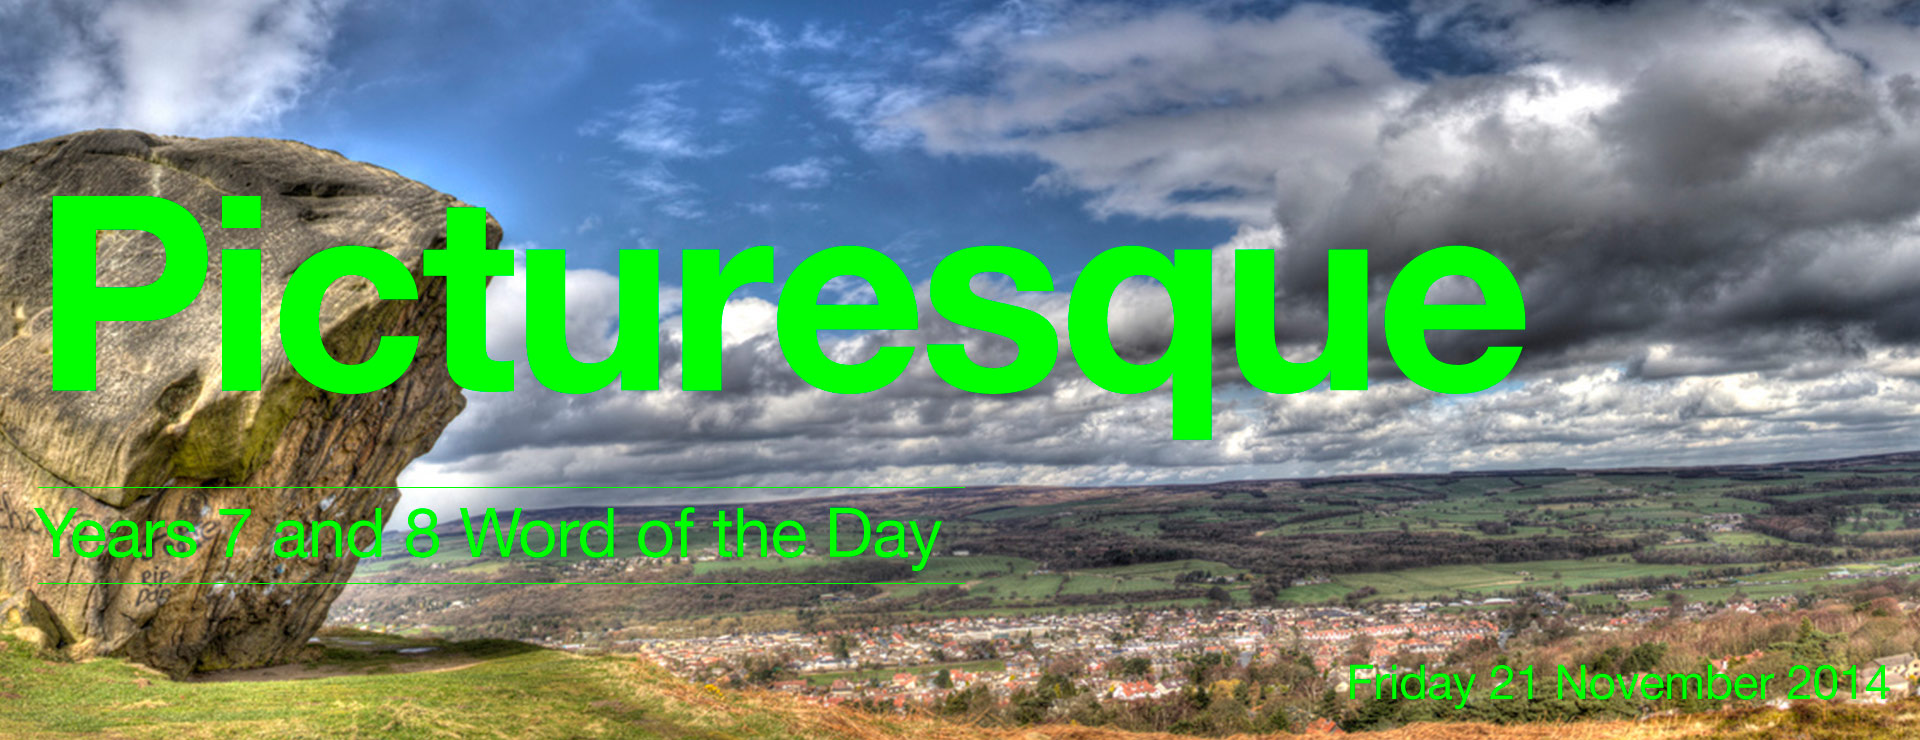 Word-of-the-Day-78.jpg